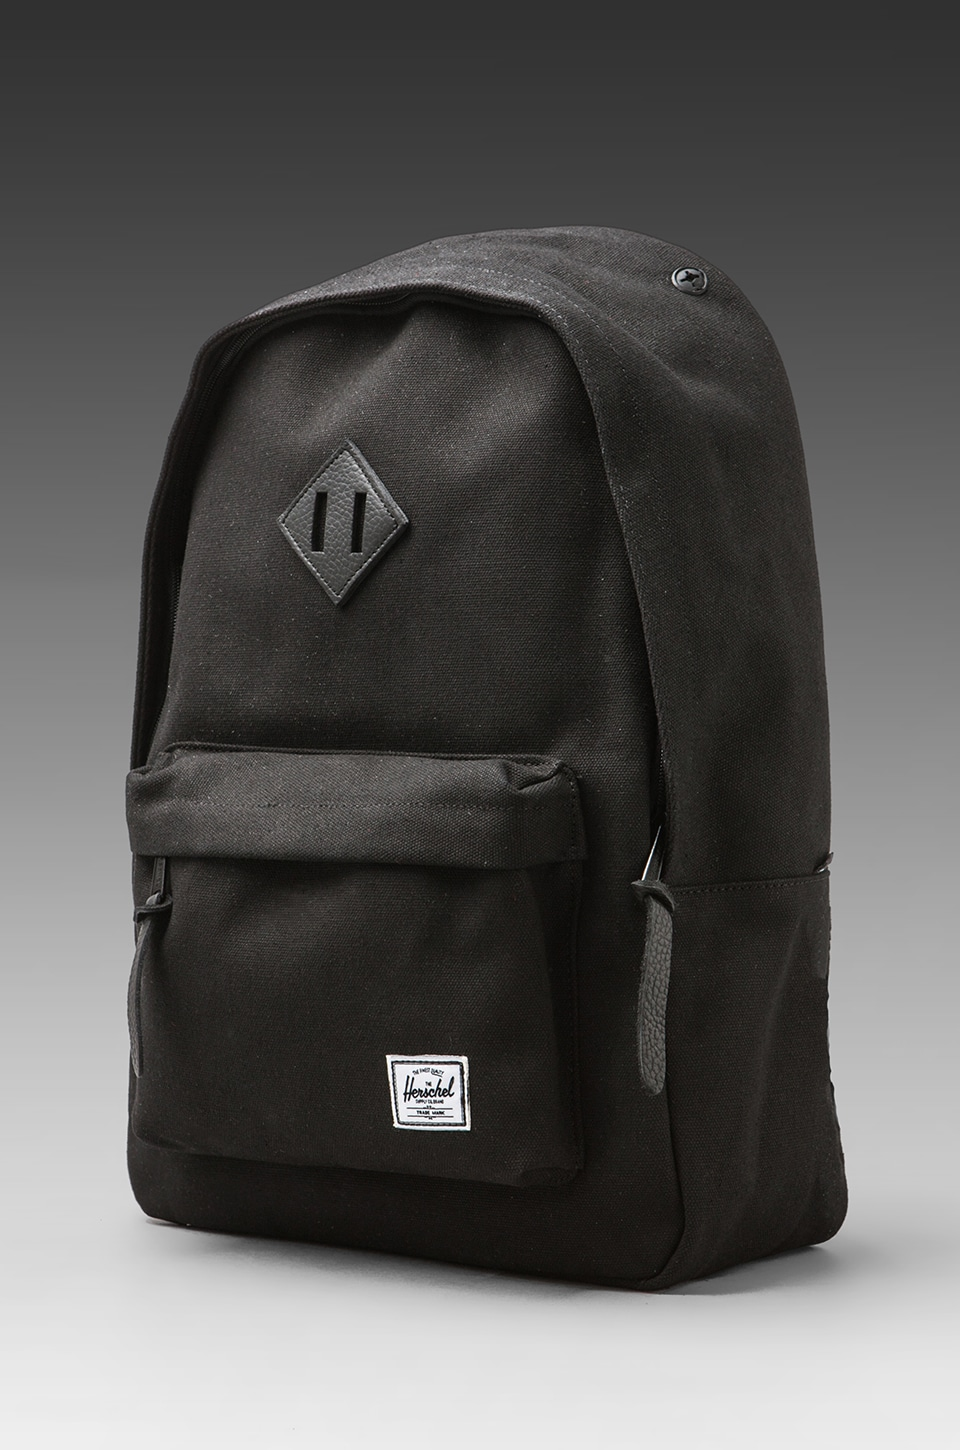 Herschel Supply Co. Black Canvas Collection Woodlands Backpack in Black Canvas